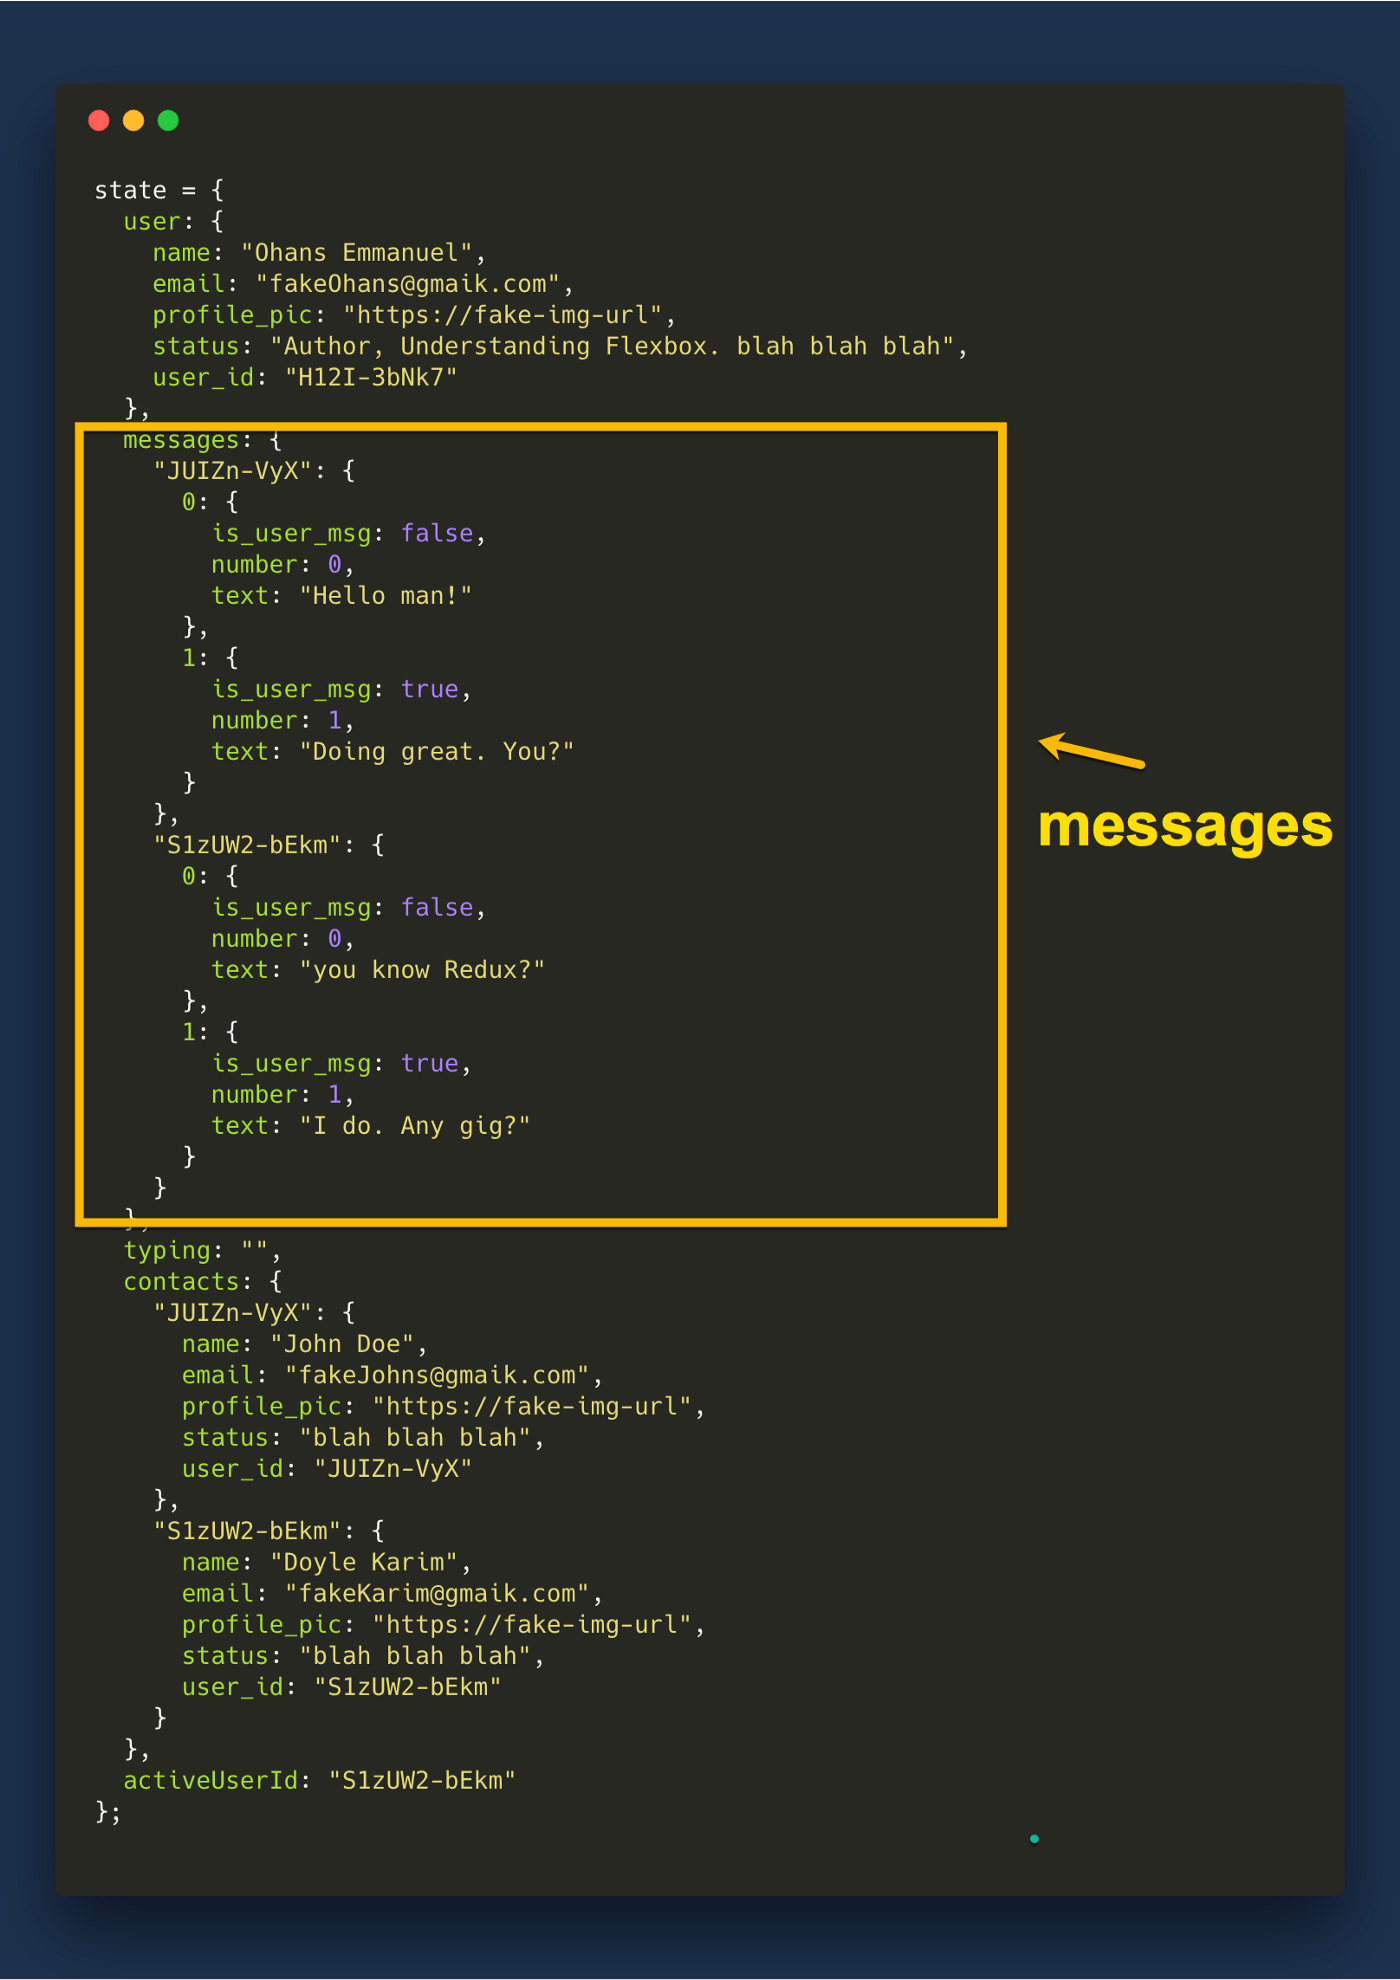 Have a look at the messages field one more time